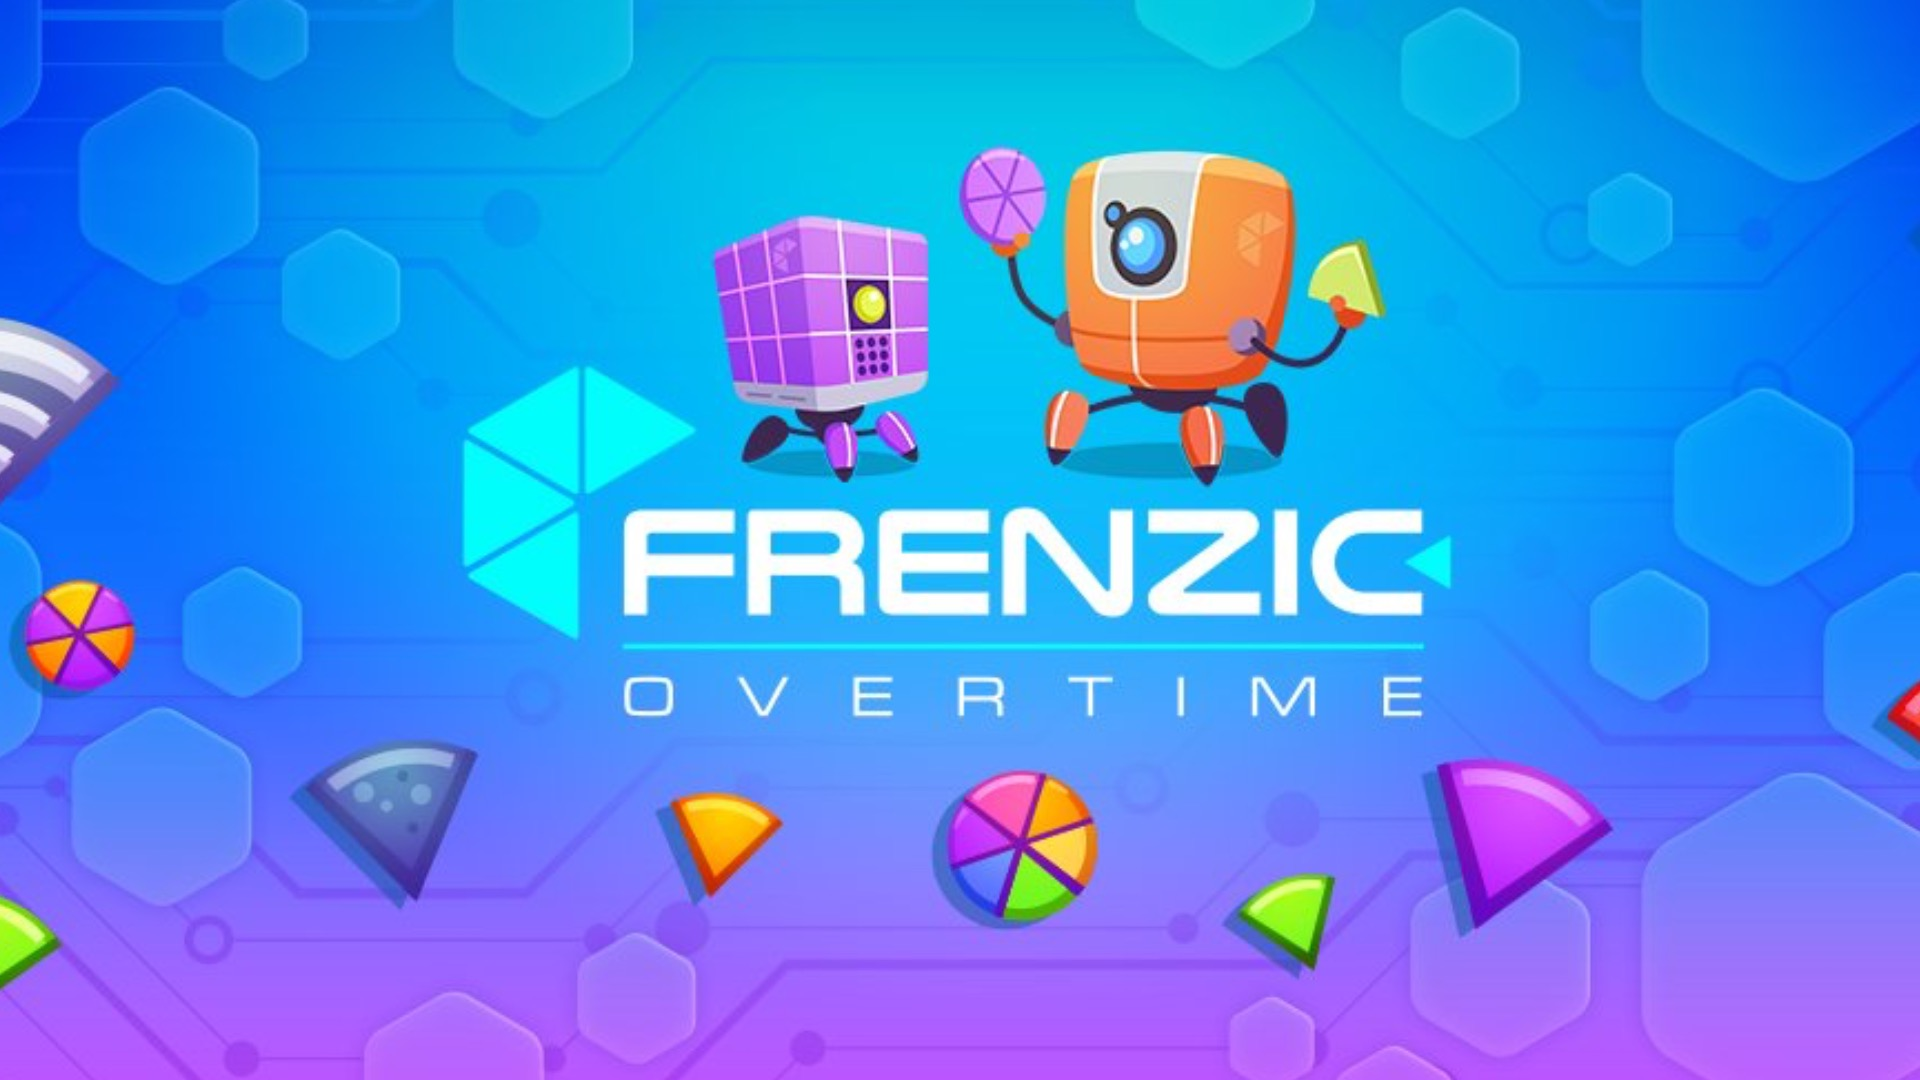 'Frenzic: Overtime' Is Out Now on Apple Arcade alongside Updates to 'All of You', 'SongPop Party' and 'Charrua Soccer'